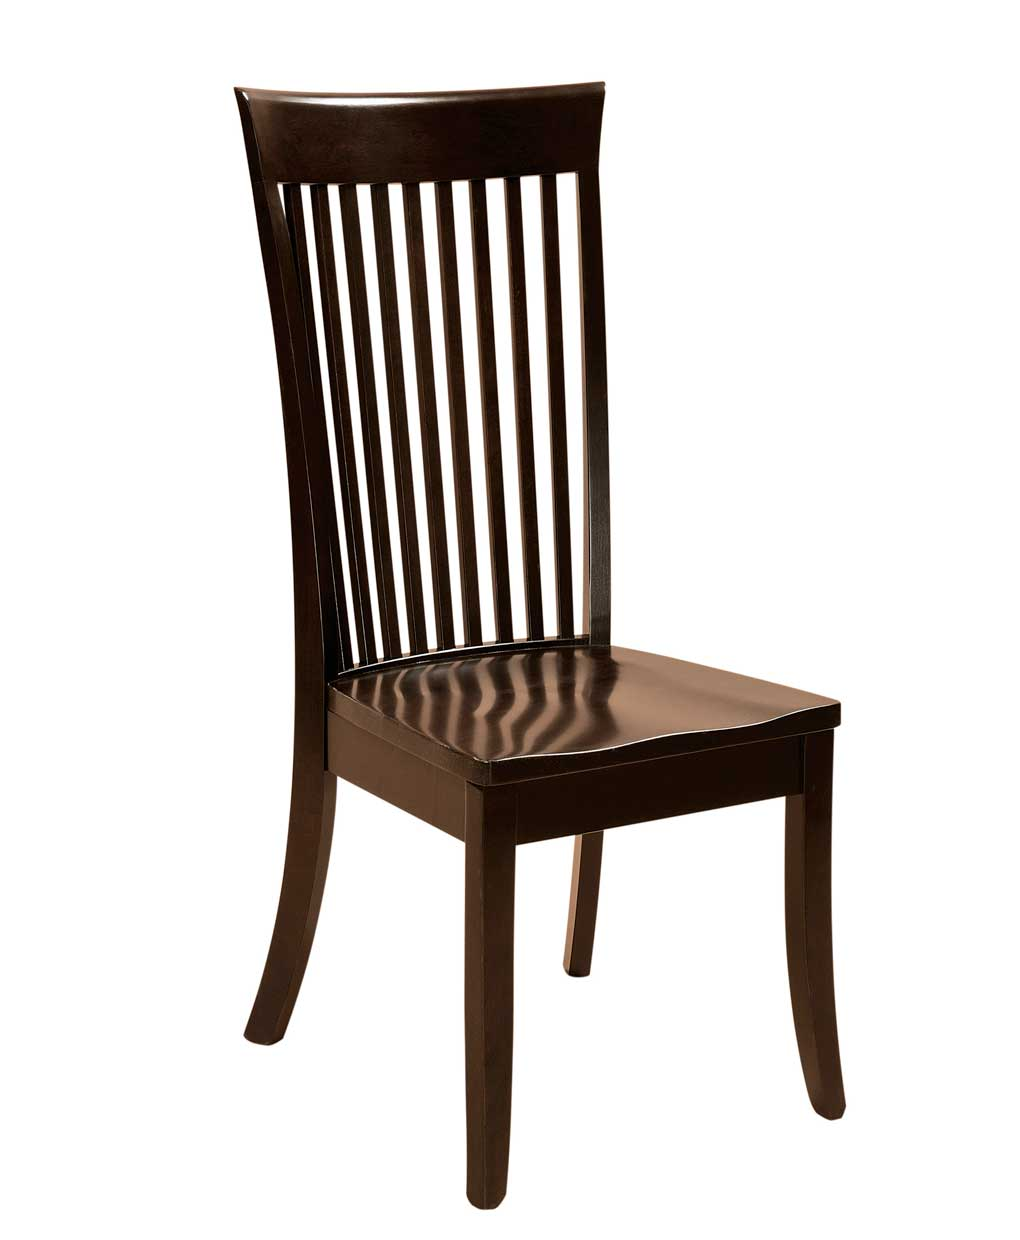 Carlisle Shaker Dining Chairs